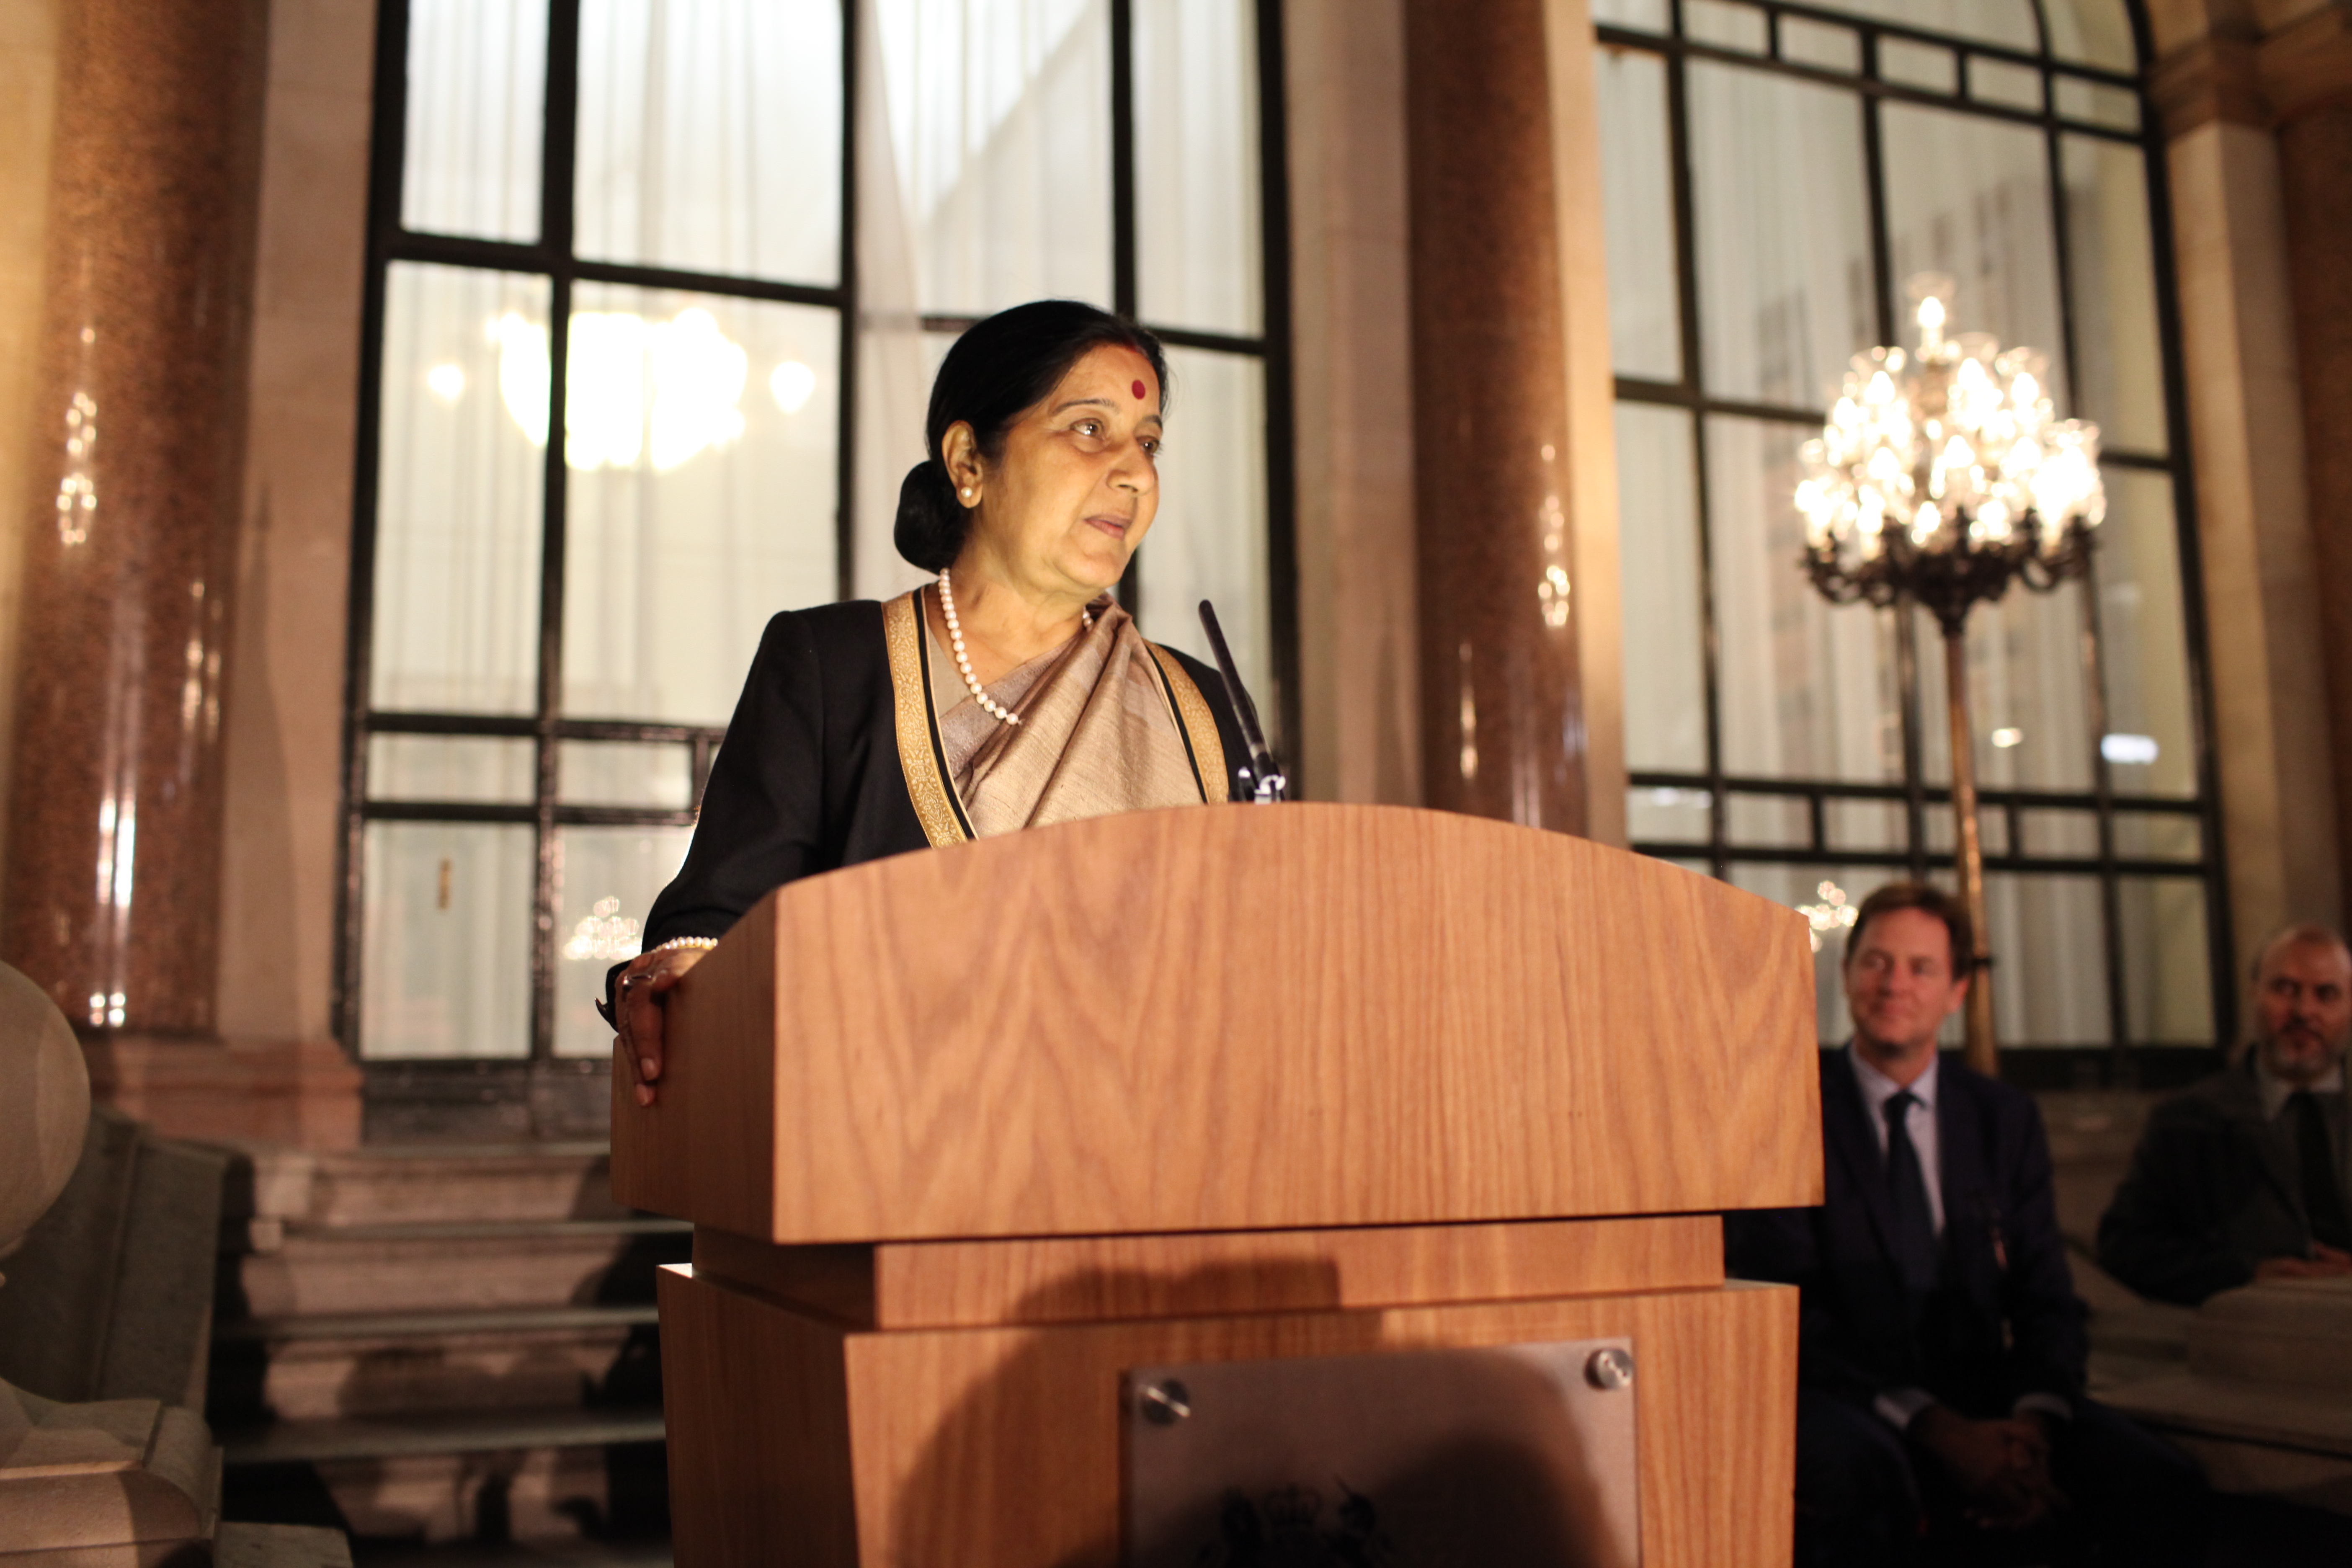 Indian Foreign Minister Sushma Swaraj on Thursday assured Parliament that there was no need to worry about the job security of Indian IT professionals in the US. She said four bills have come to the US Congress regarding H-1B and L1 visas for professionals but they have not been passed. The Minister said the government was in talks with the Trump administrations and engaging with them at the highest level to ensure that the interests of Indian people or the IT industry are not affected. The foreign secretary had met US Congress members who had been all praise for Indians, she said. During the Question Hour in Rajya Sabha on Thursday, Swaraj said the Trump administration was not the only one which had changed US policies.